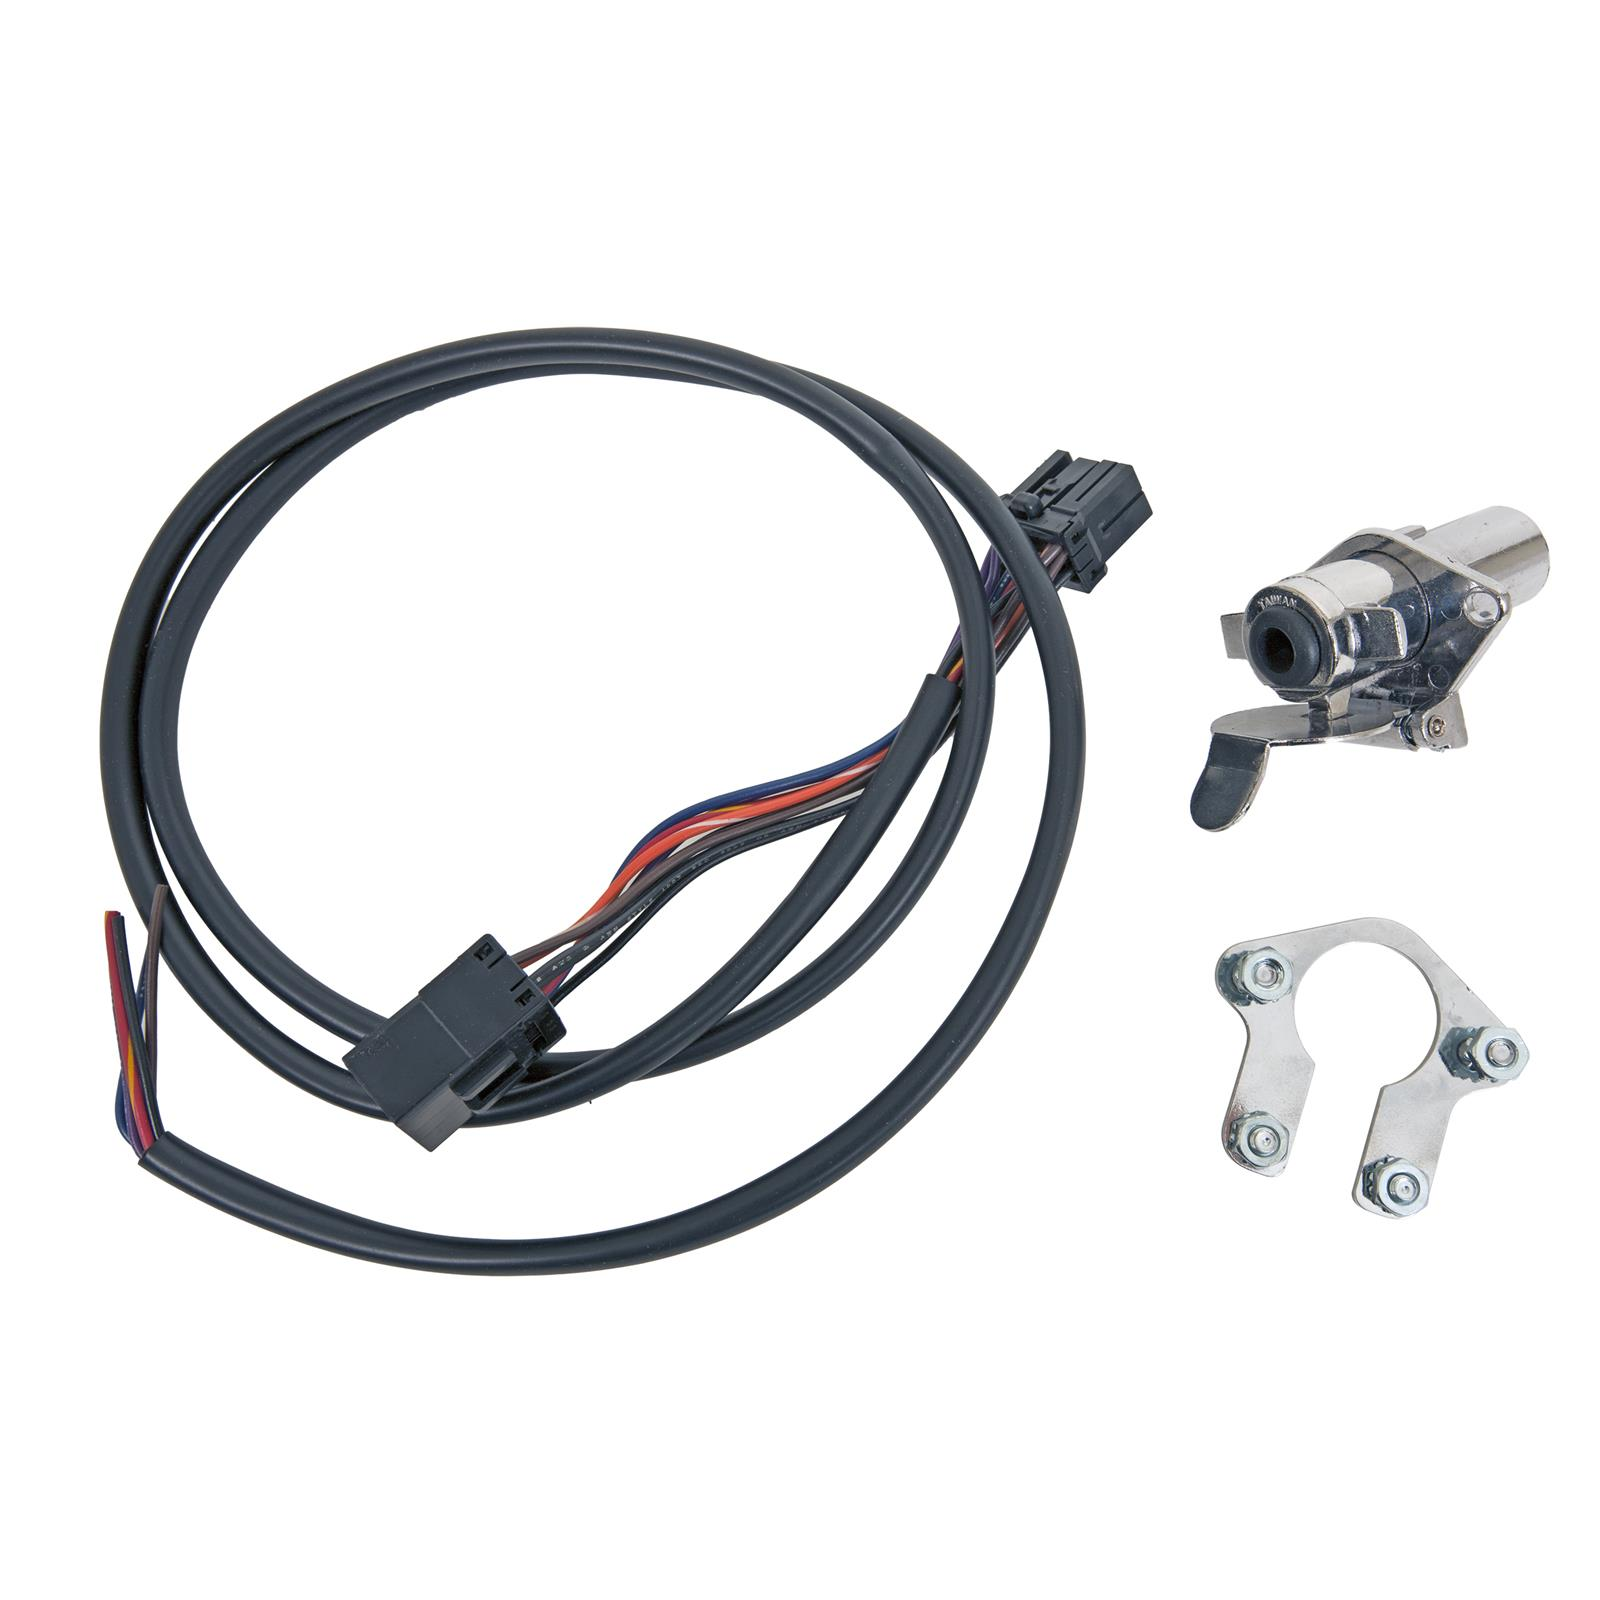 Khrome Werks Plug-and-Play Trailer Wiring Harnesses 720585 on